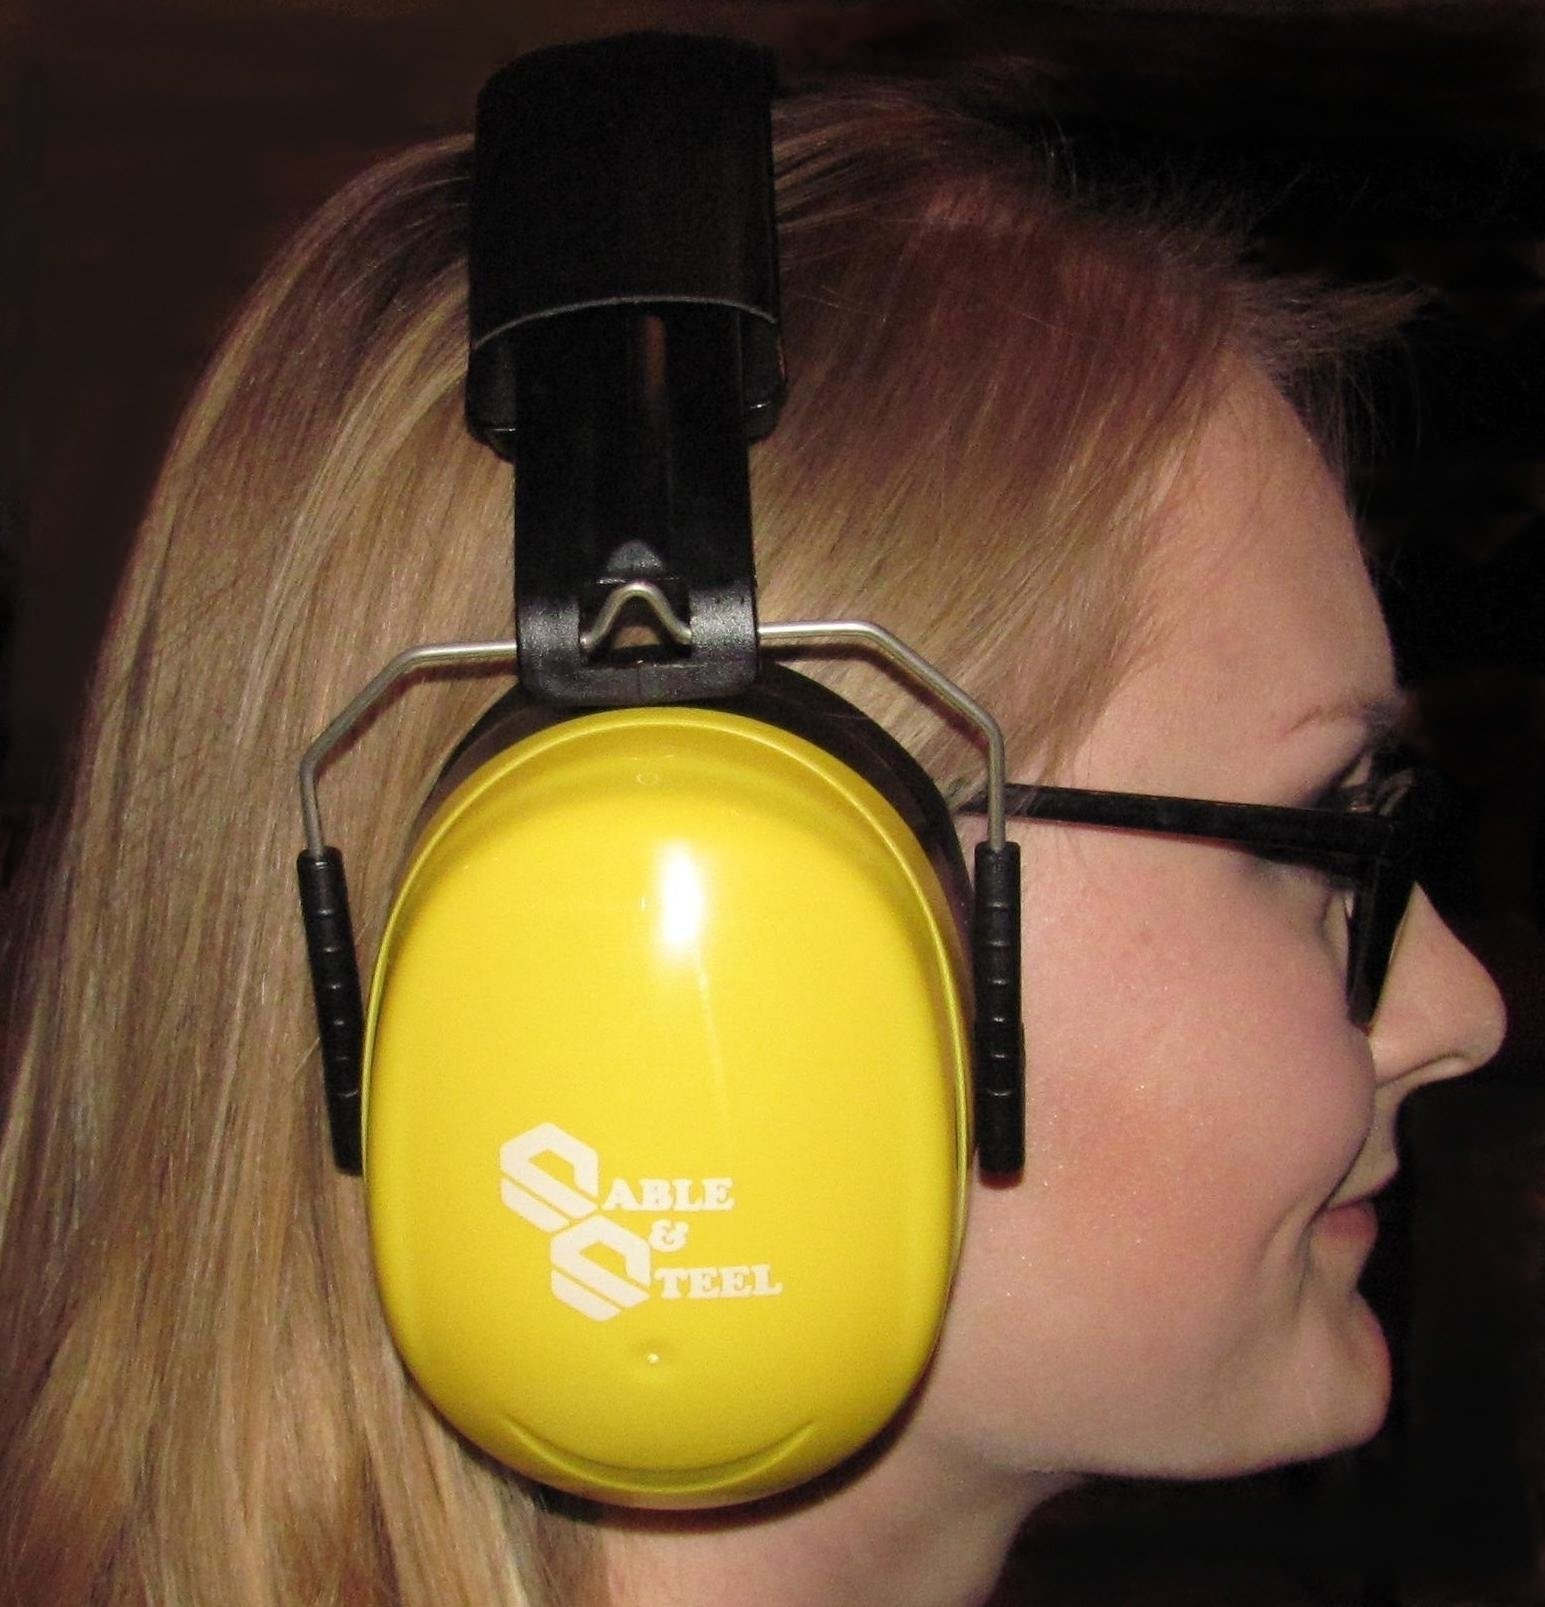 Sable & Steel Highest NRR 35db Safety Ear Muffs Auto Adjustable Earmuffs Shooters Hearing Protection Ear Muffs For Sports Outdoors Shooting Racing Work. Fits Adults Children.Yellow by Sable & Steel (Image #9)